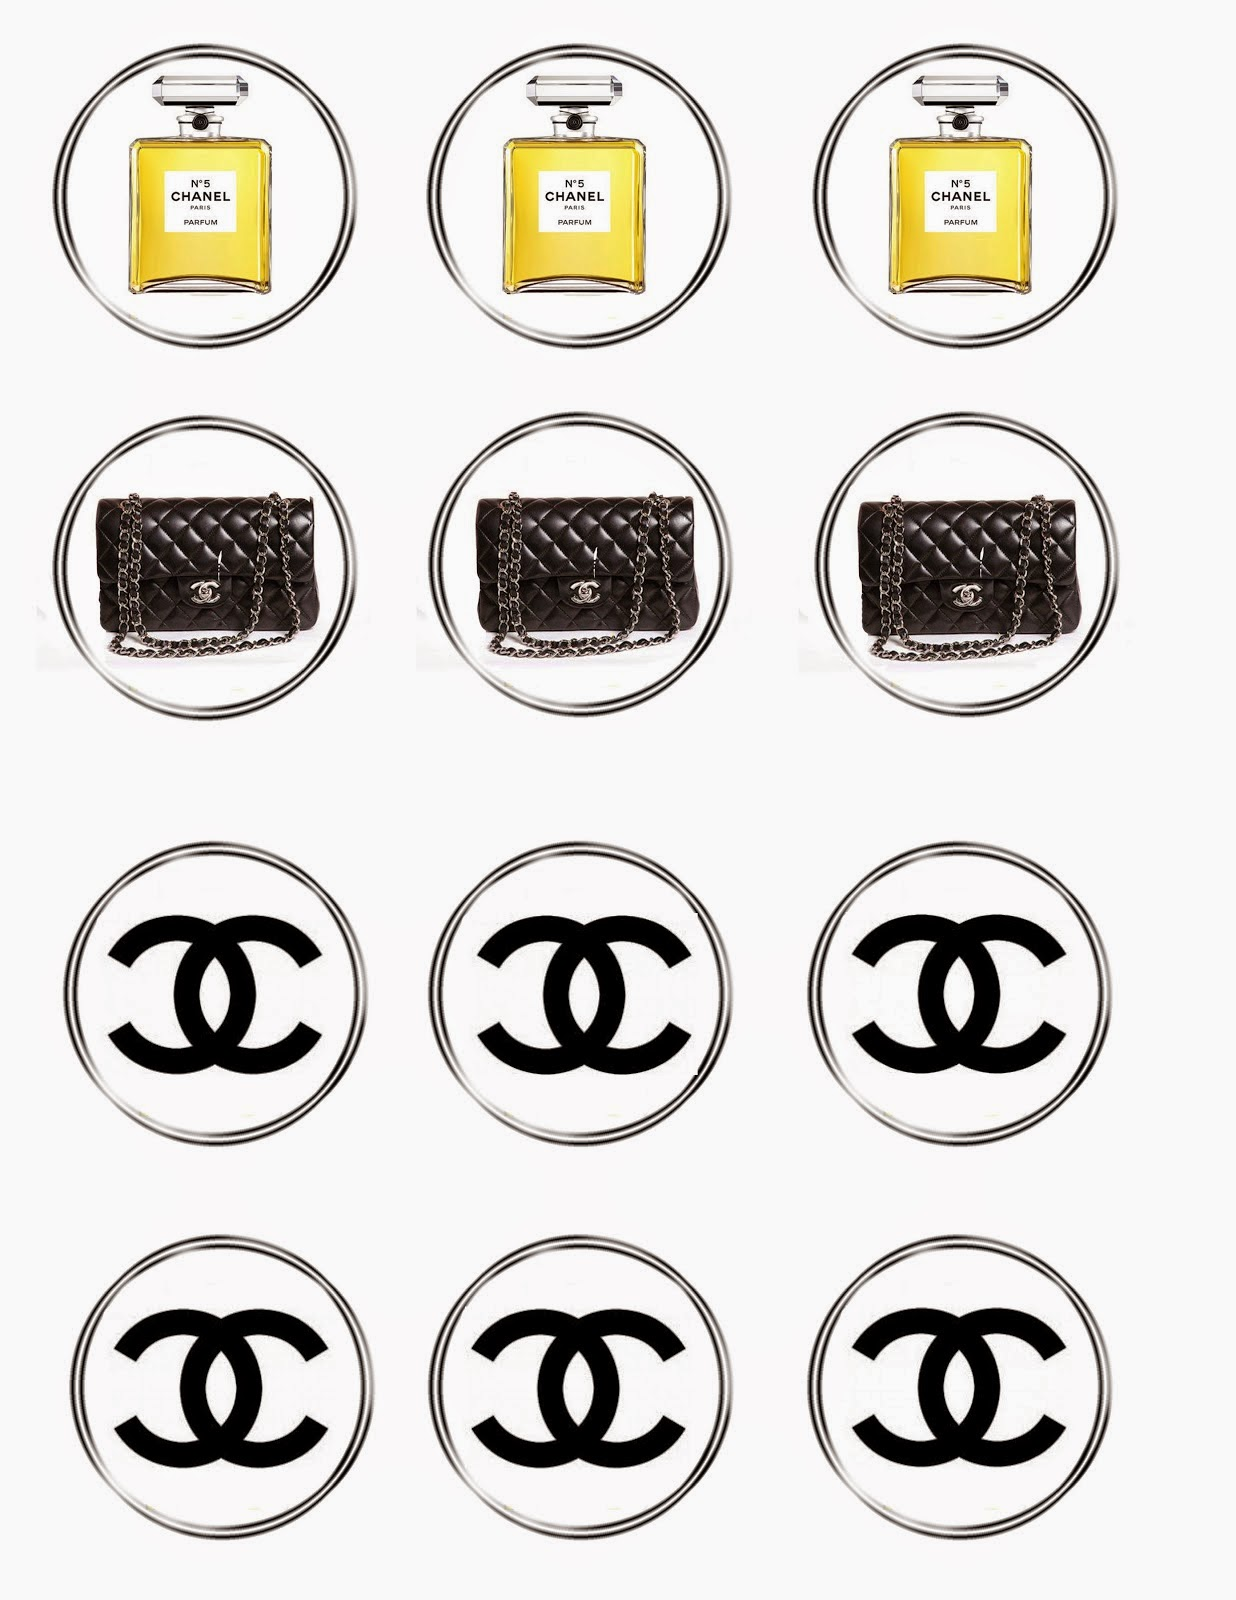 image regarding Free Printable Chanel Logo referred to as Chanel Absolutely free Printable Bash Package. - Oh My Fiesta! within just english